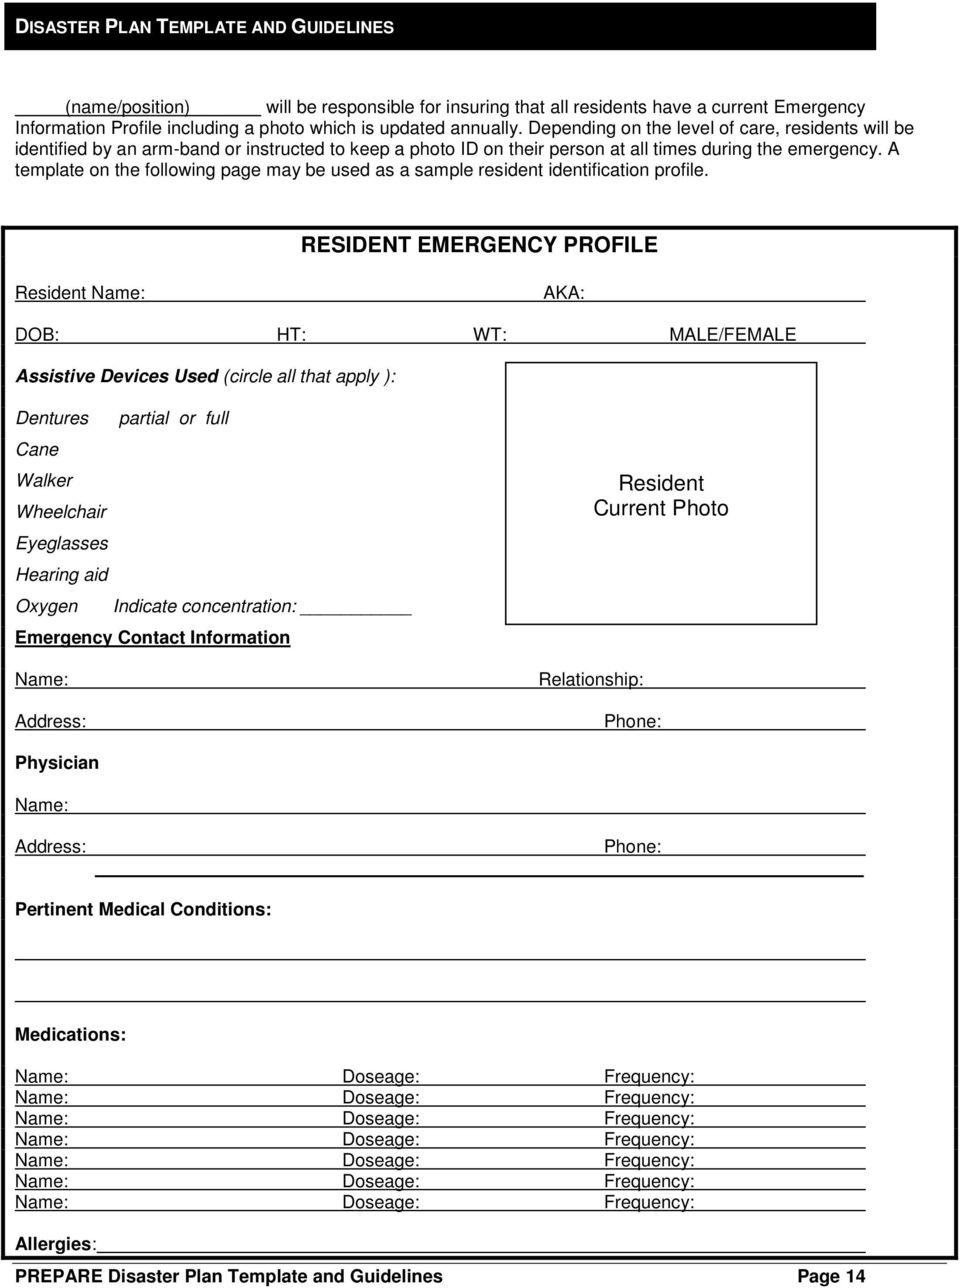 A template on the following page may be used as a sample resident identification profile.